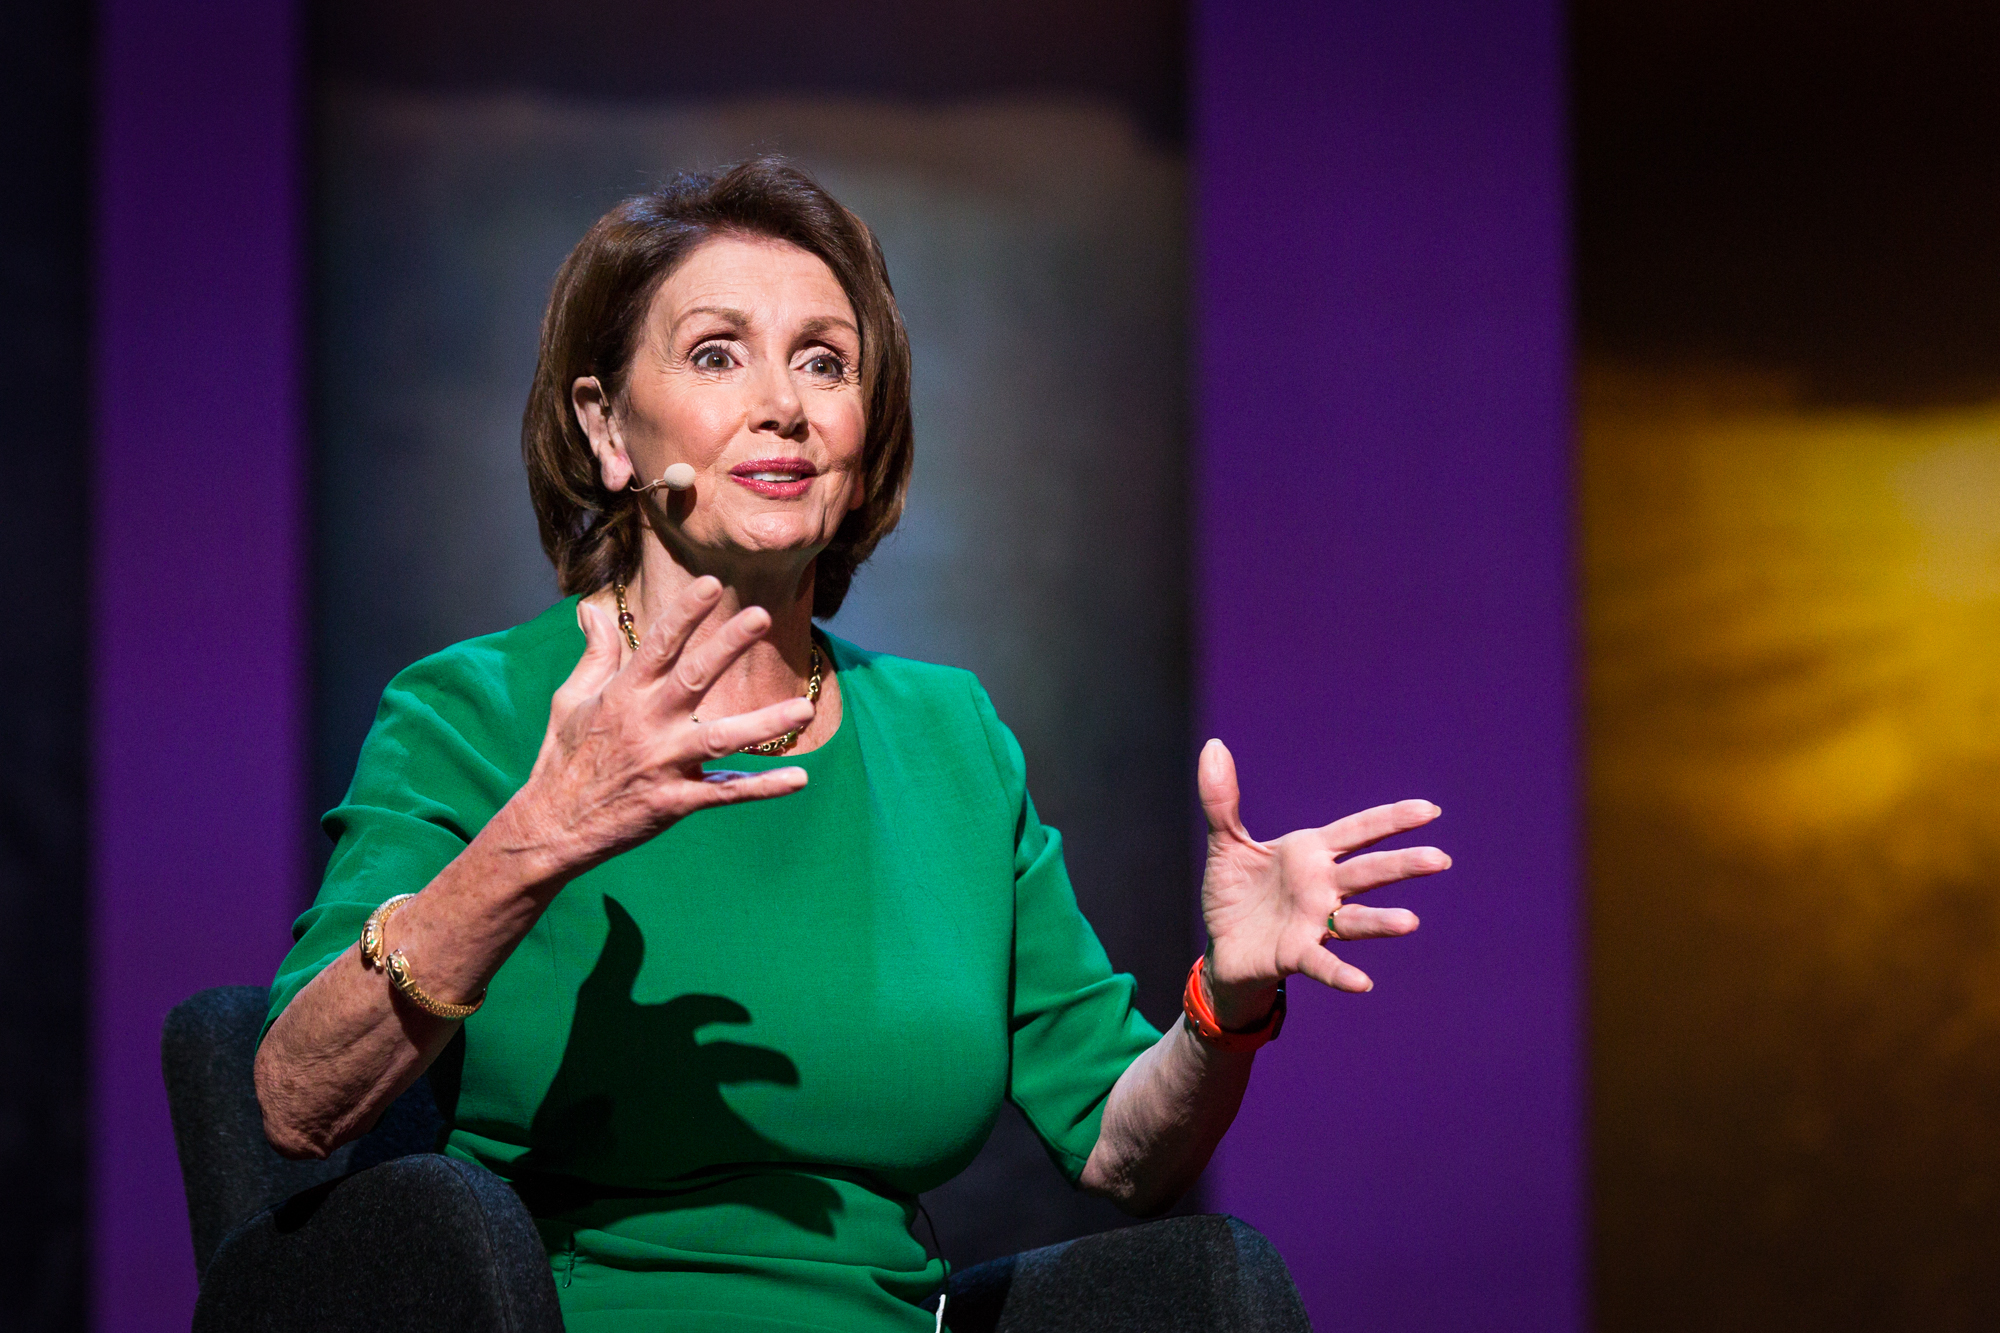 Nancy Pelosi at TEDWomen 2016 - It's About Time,  October 26-28, 2016, Yerba Buena Centre for the Arts, San Francisco, California. Photo: Marla Aufmuth / TED